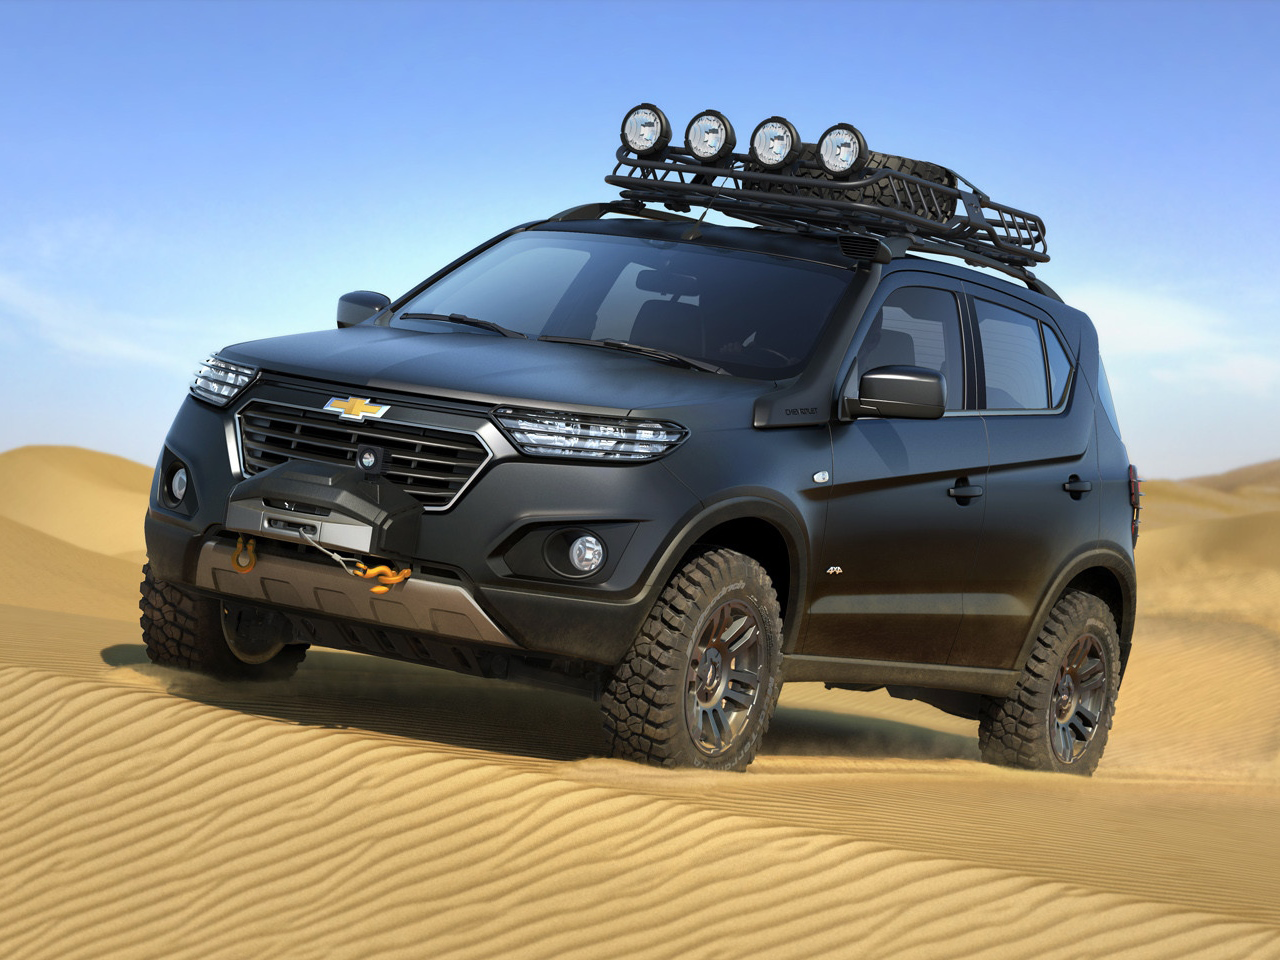 chevrolet niva suv concept photo gallery  autocar india